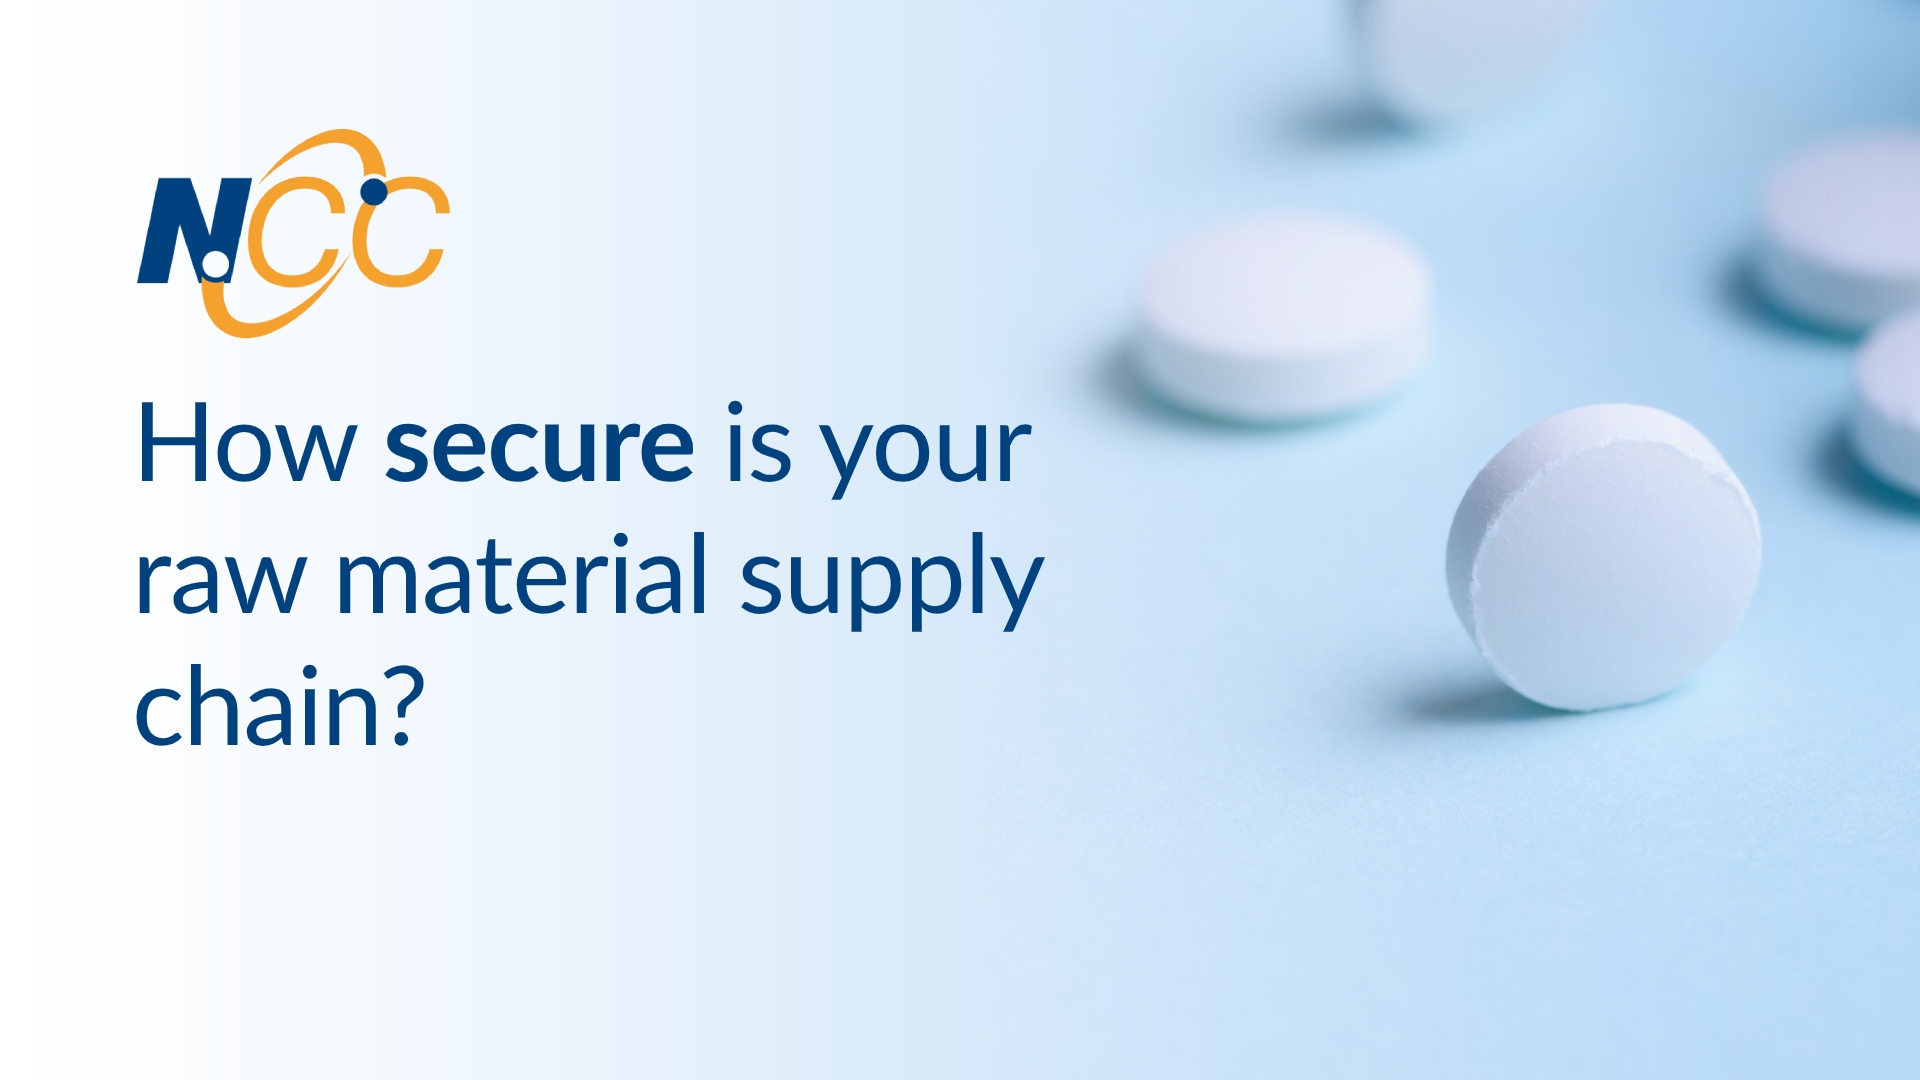 How secure is your raw material supply chain?